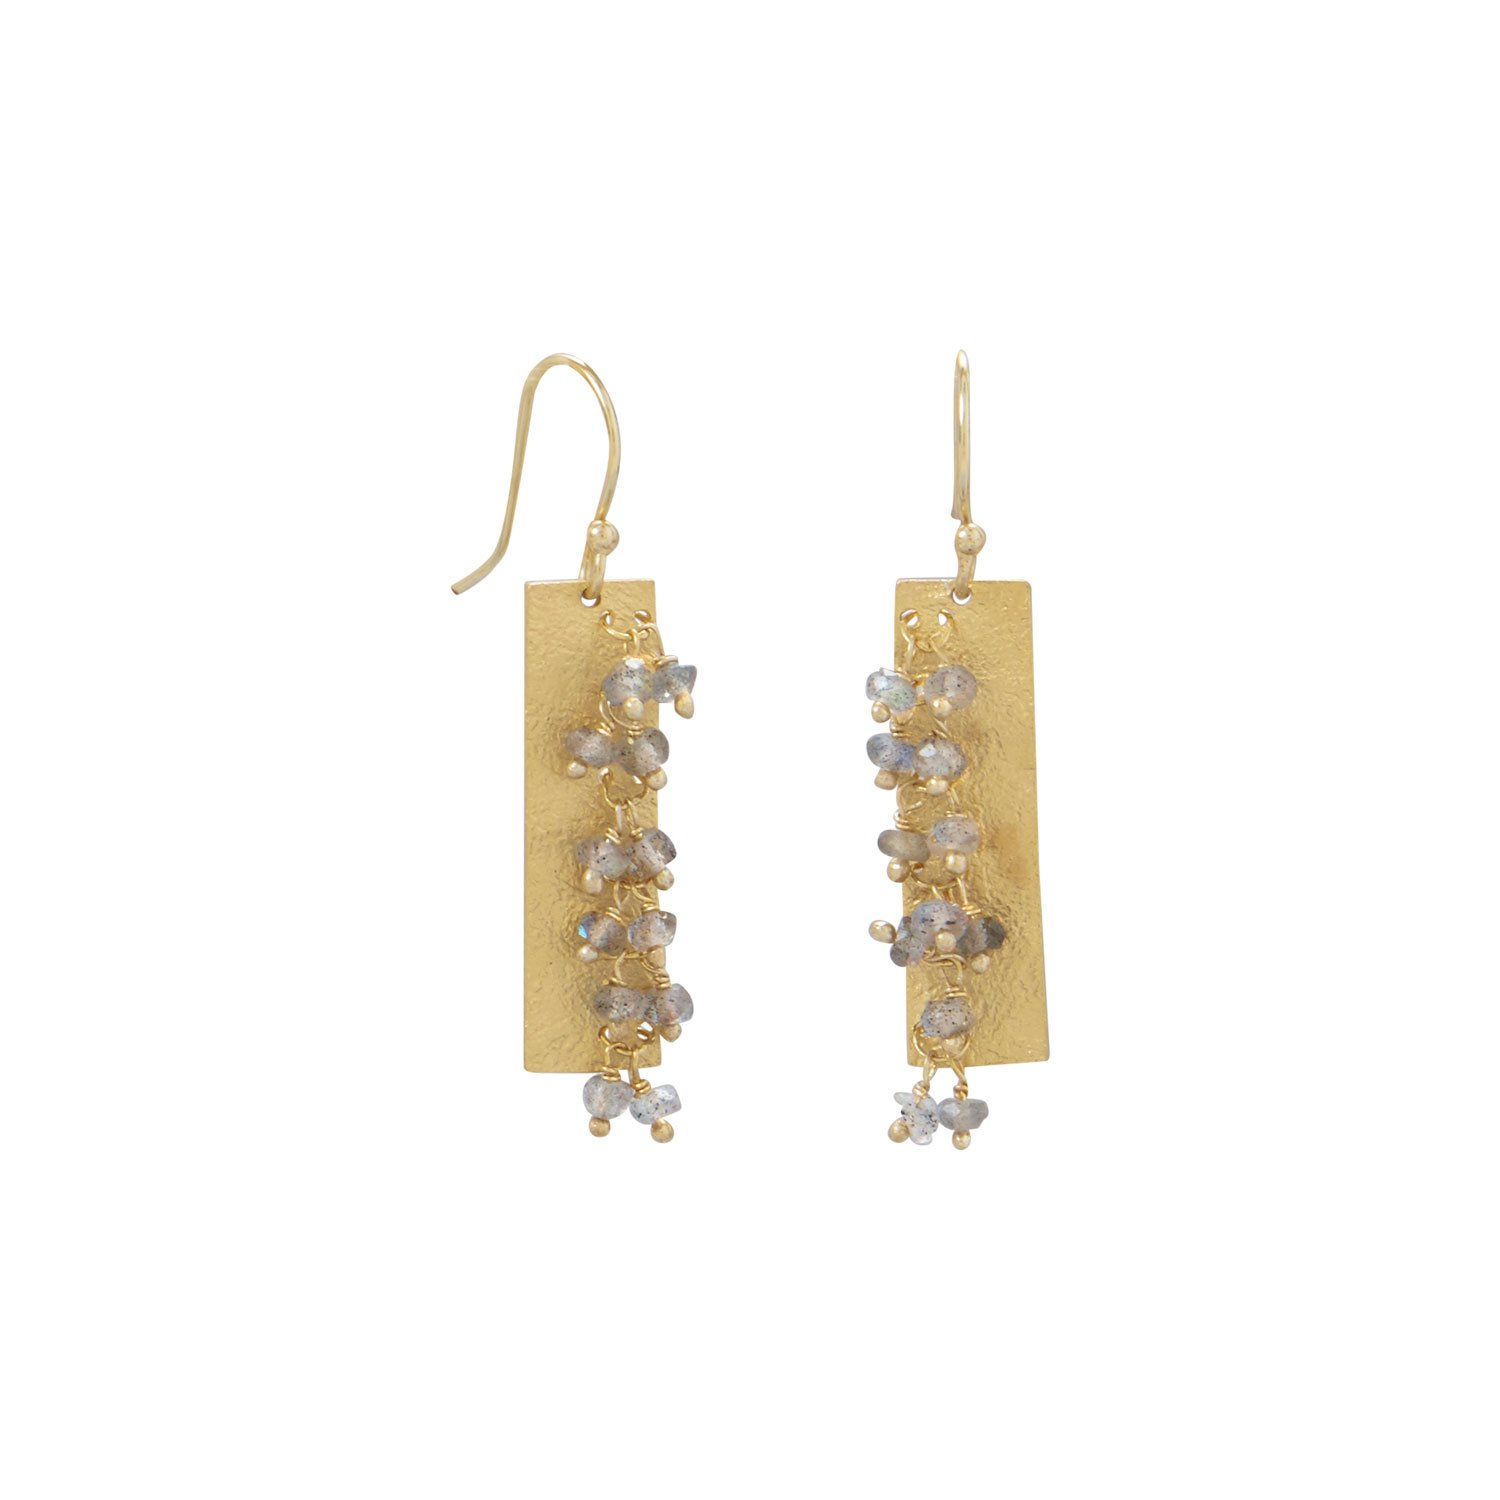 14 Karat Gold Plated Textured Rectangle and Labradorite Bead Earrings